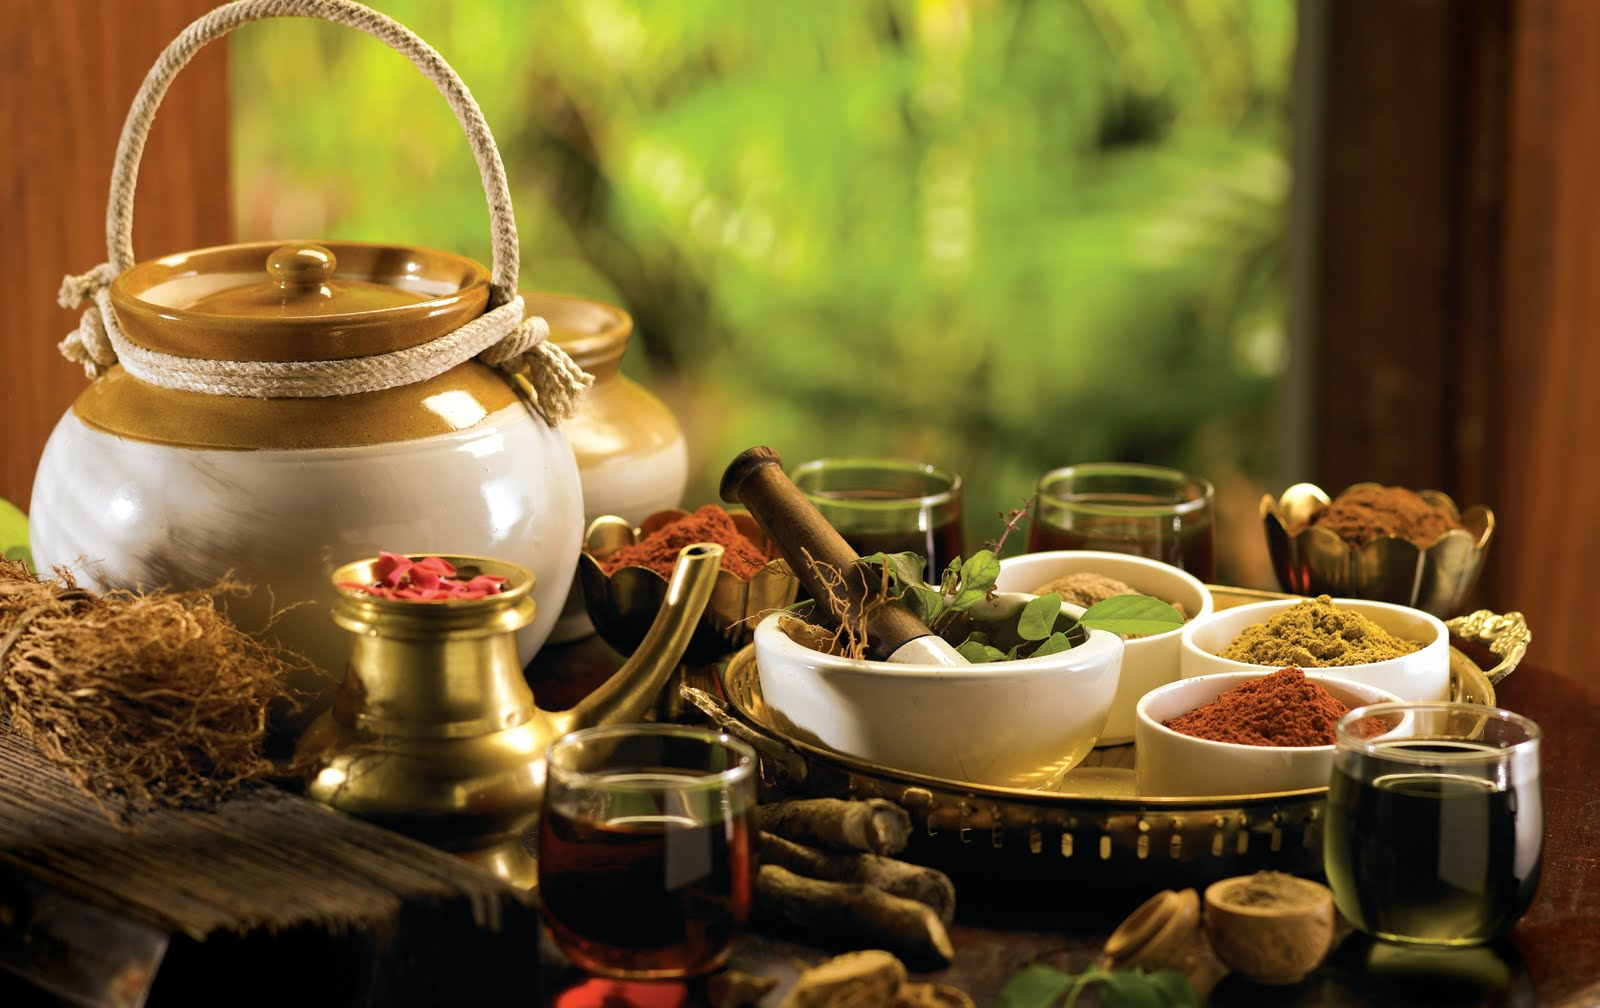 Alternative medicine - ayurveda